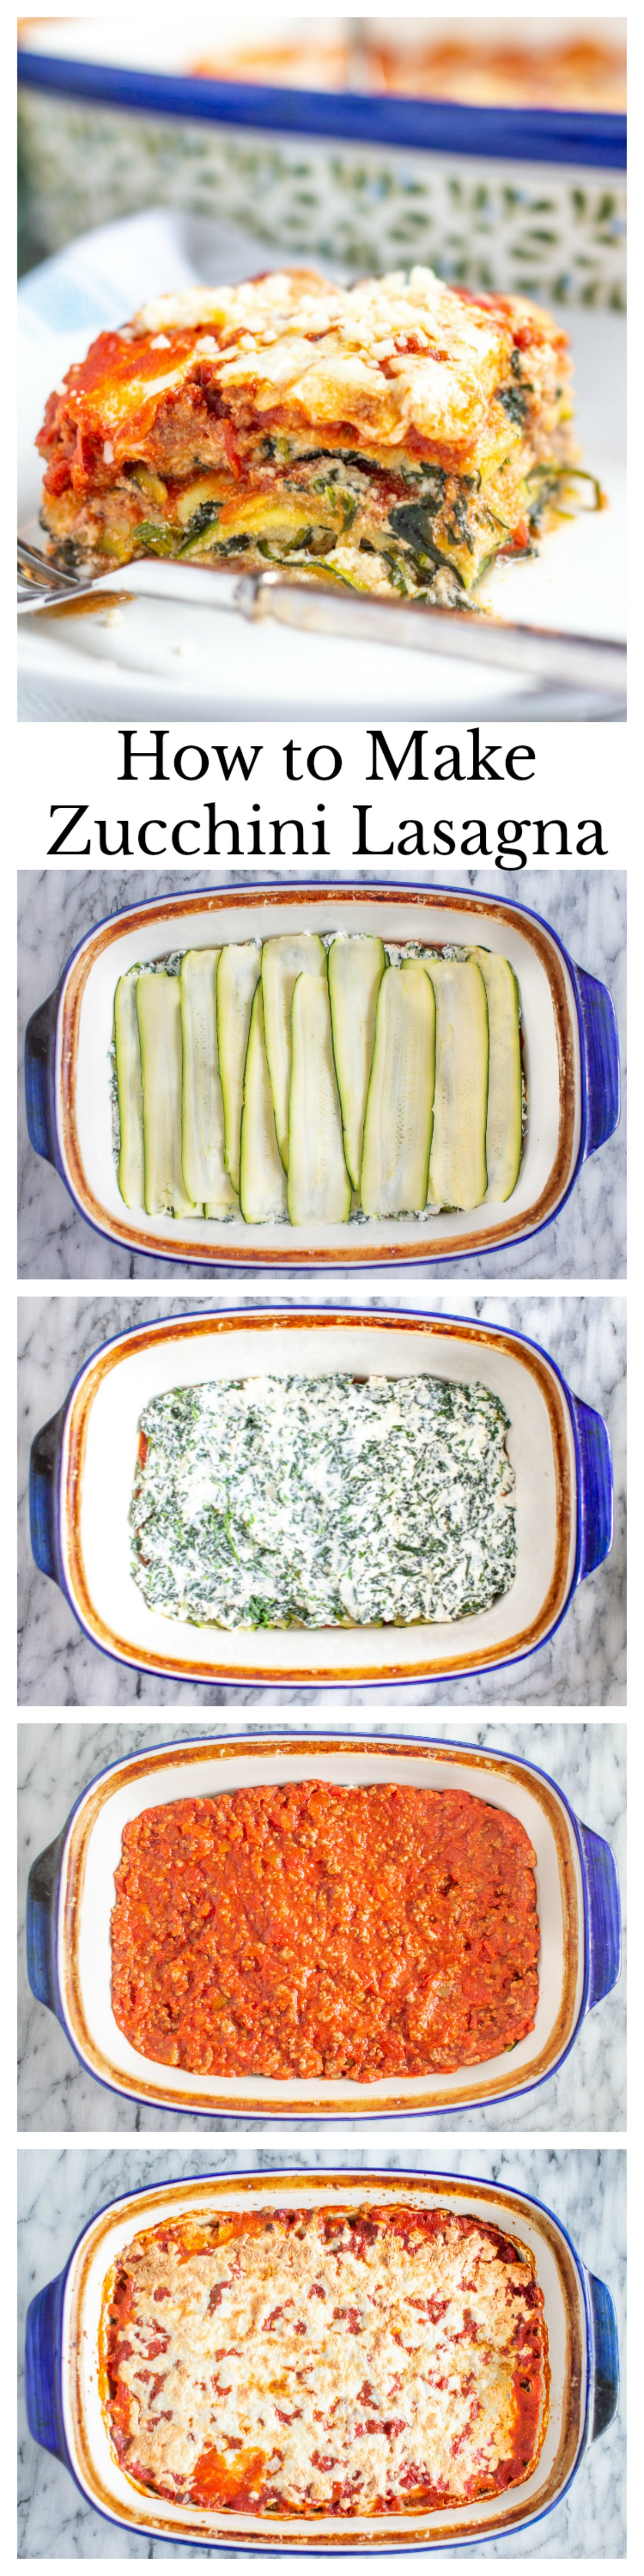 How to Make Zucchini Lasagna - an easy meaty low-carb lasagna recipe.